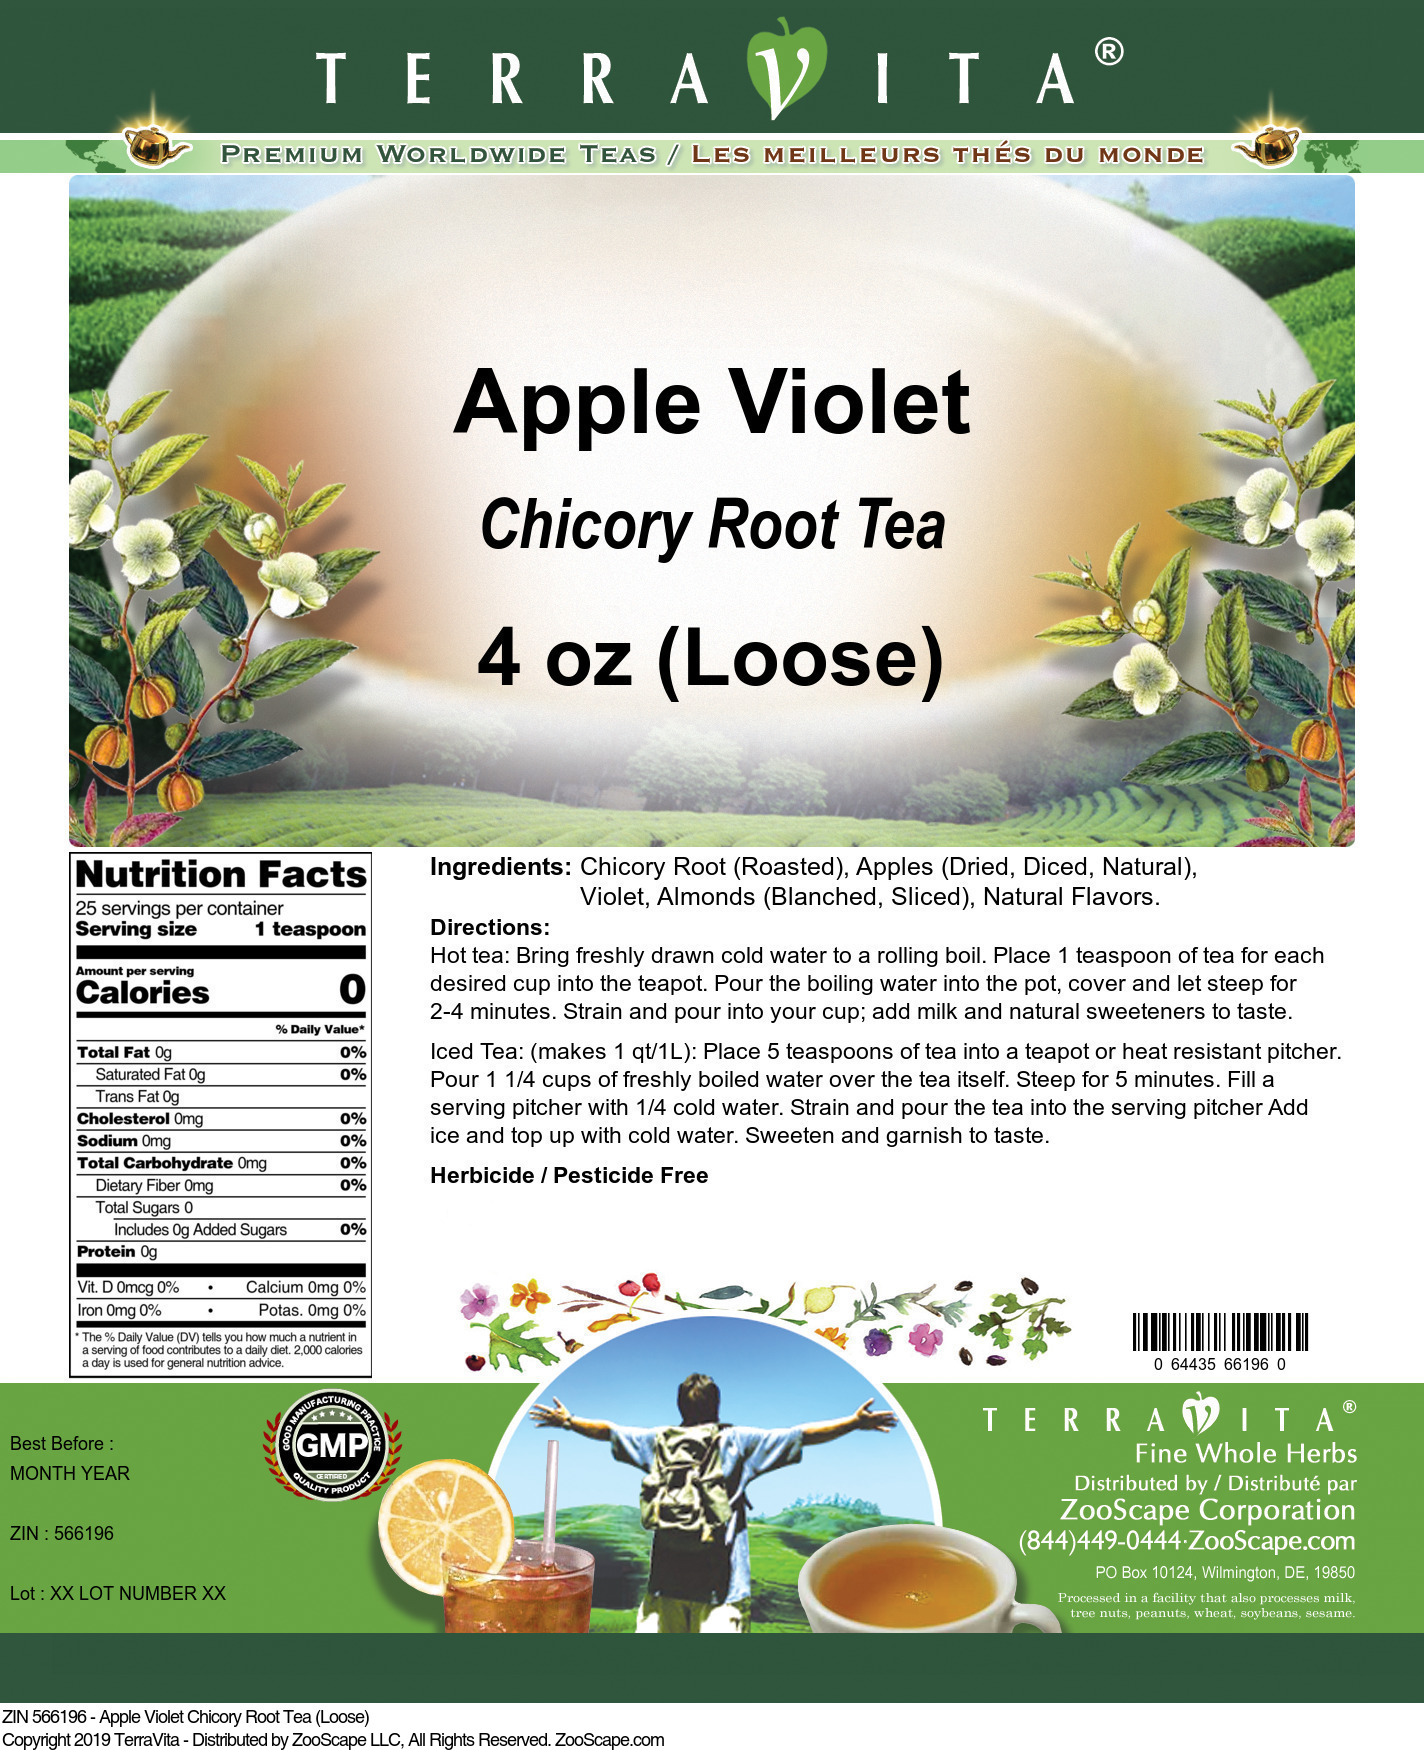 Apple Violet Chicory Root